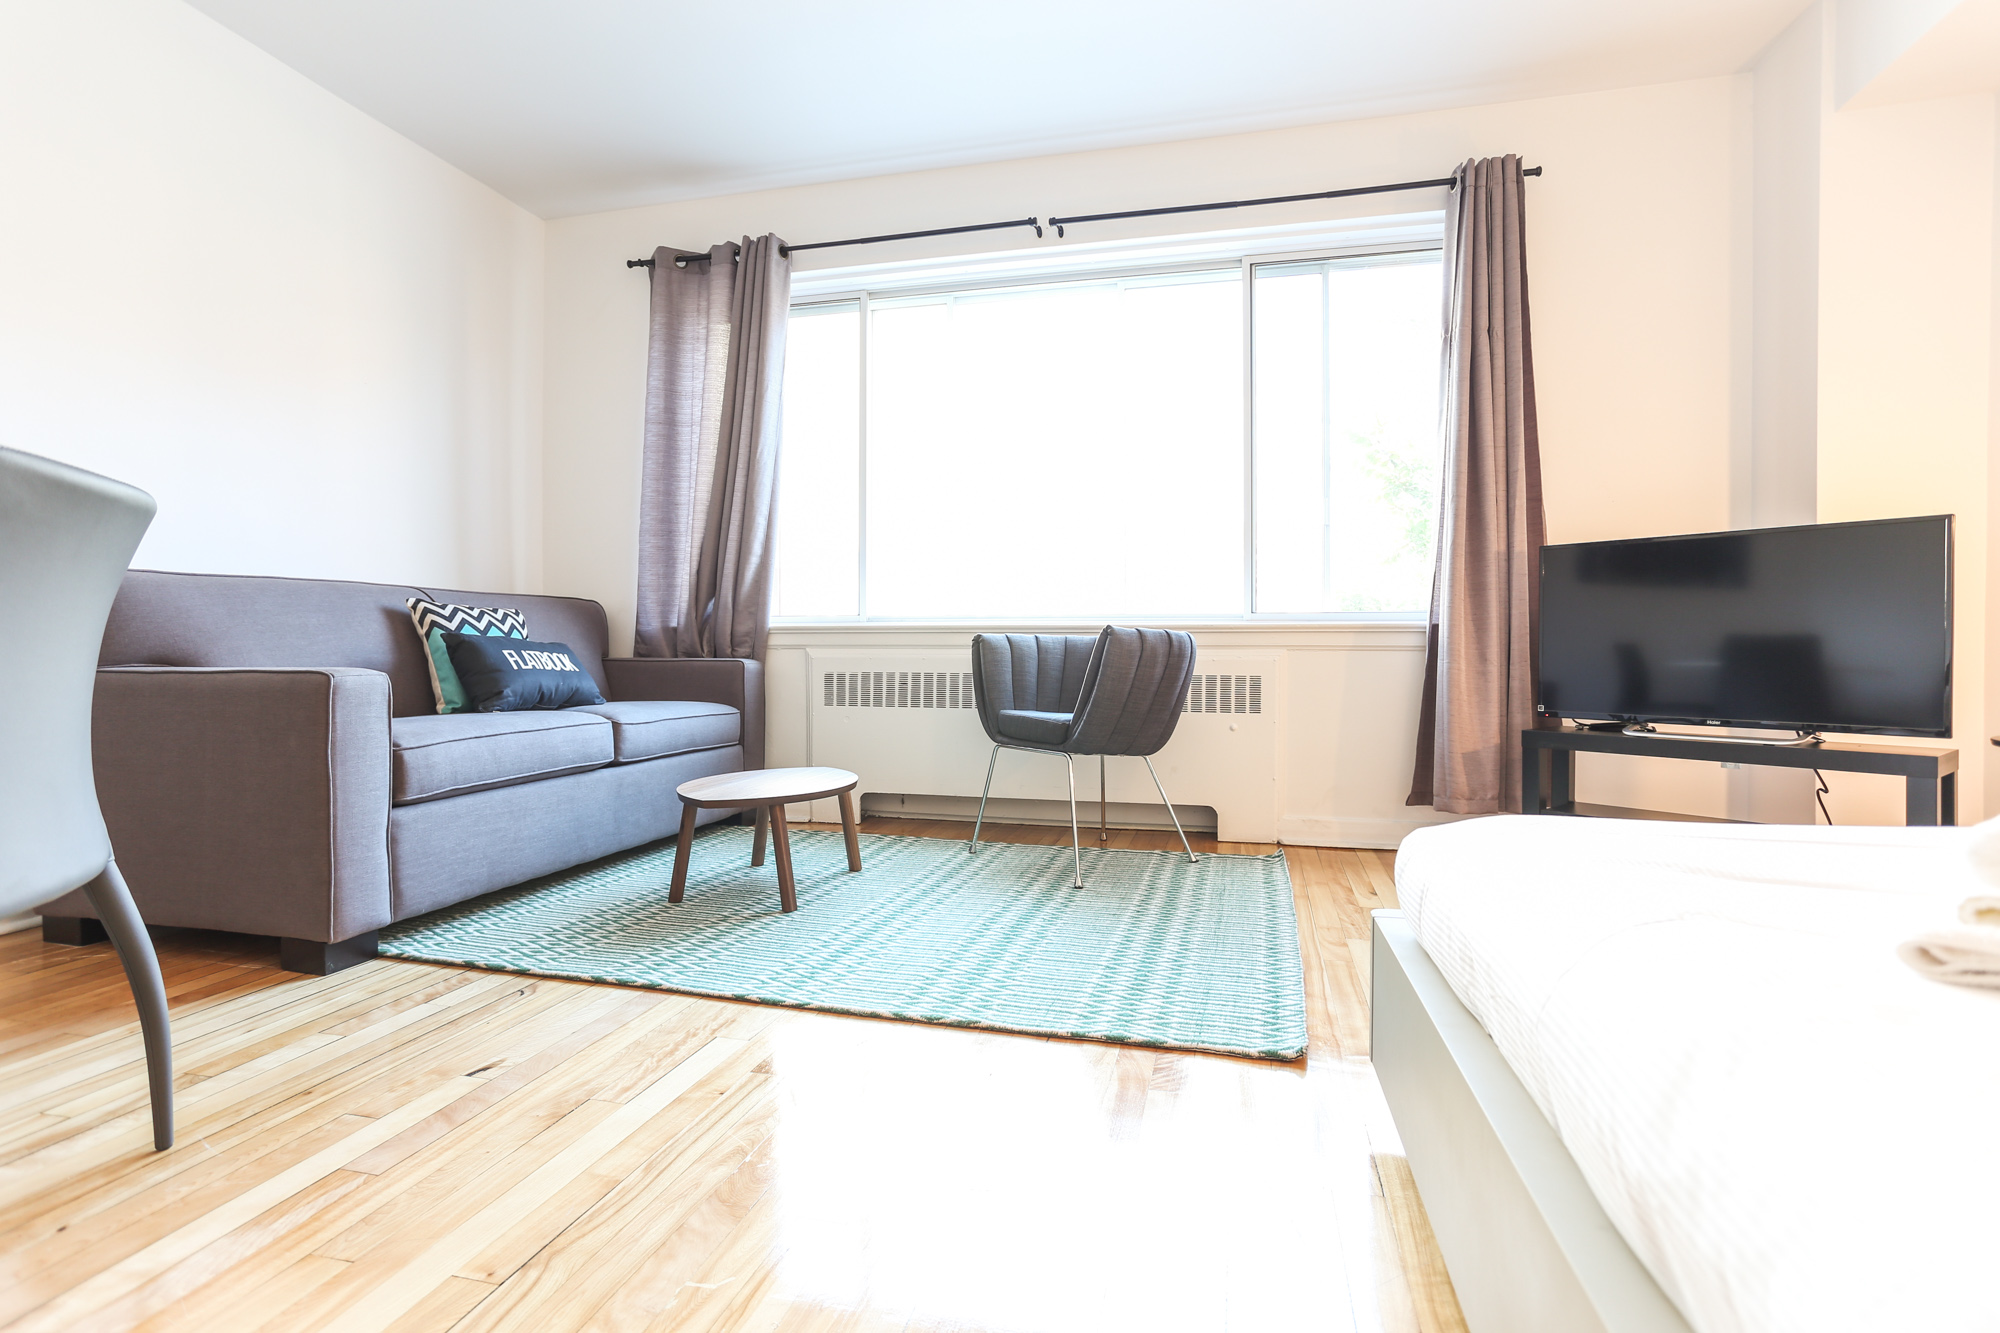 Appartement Studio / Bachelor a louer à Montréal (Centre-Ville) a 1420 St Mathieu - Photo 10 - TrouveUnAppart – L1748